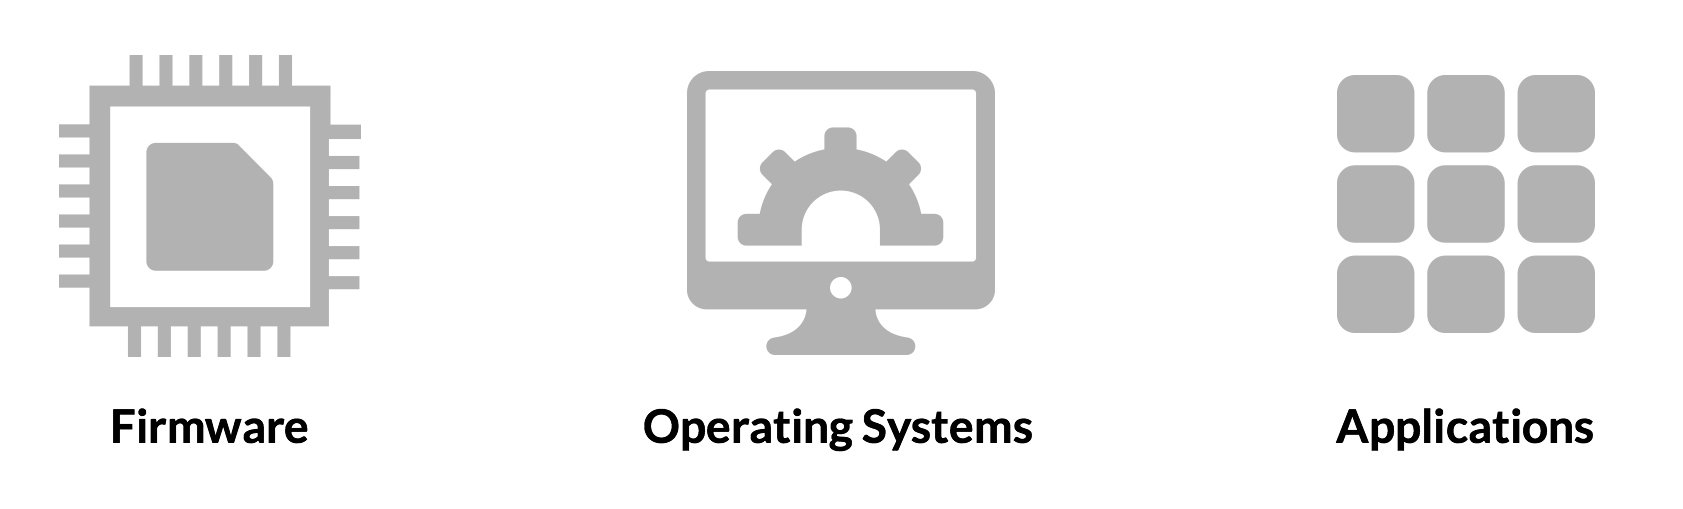 Firmware, Operating Systems, Applications Icons